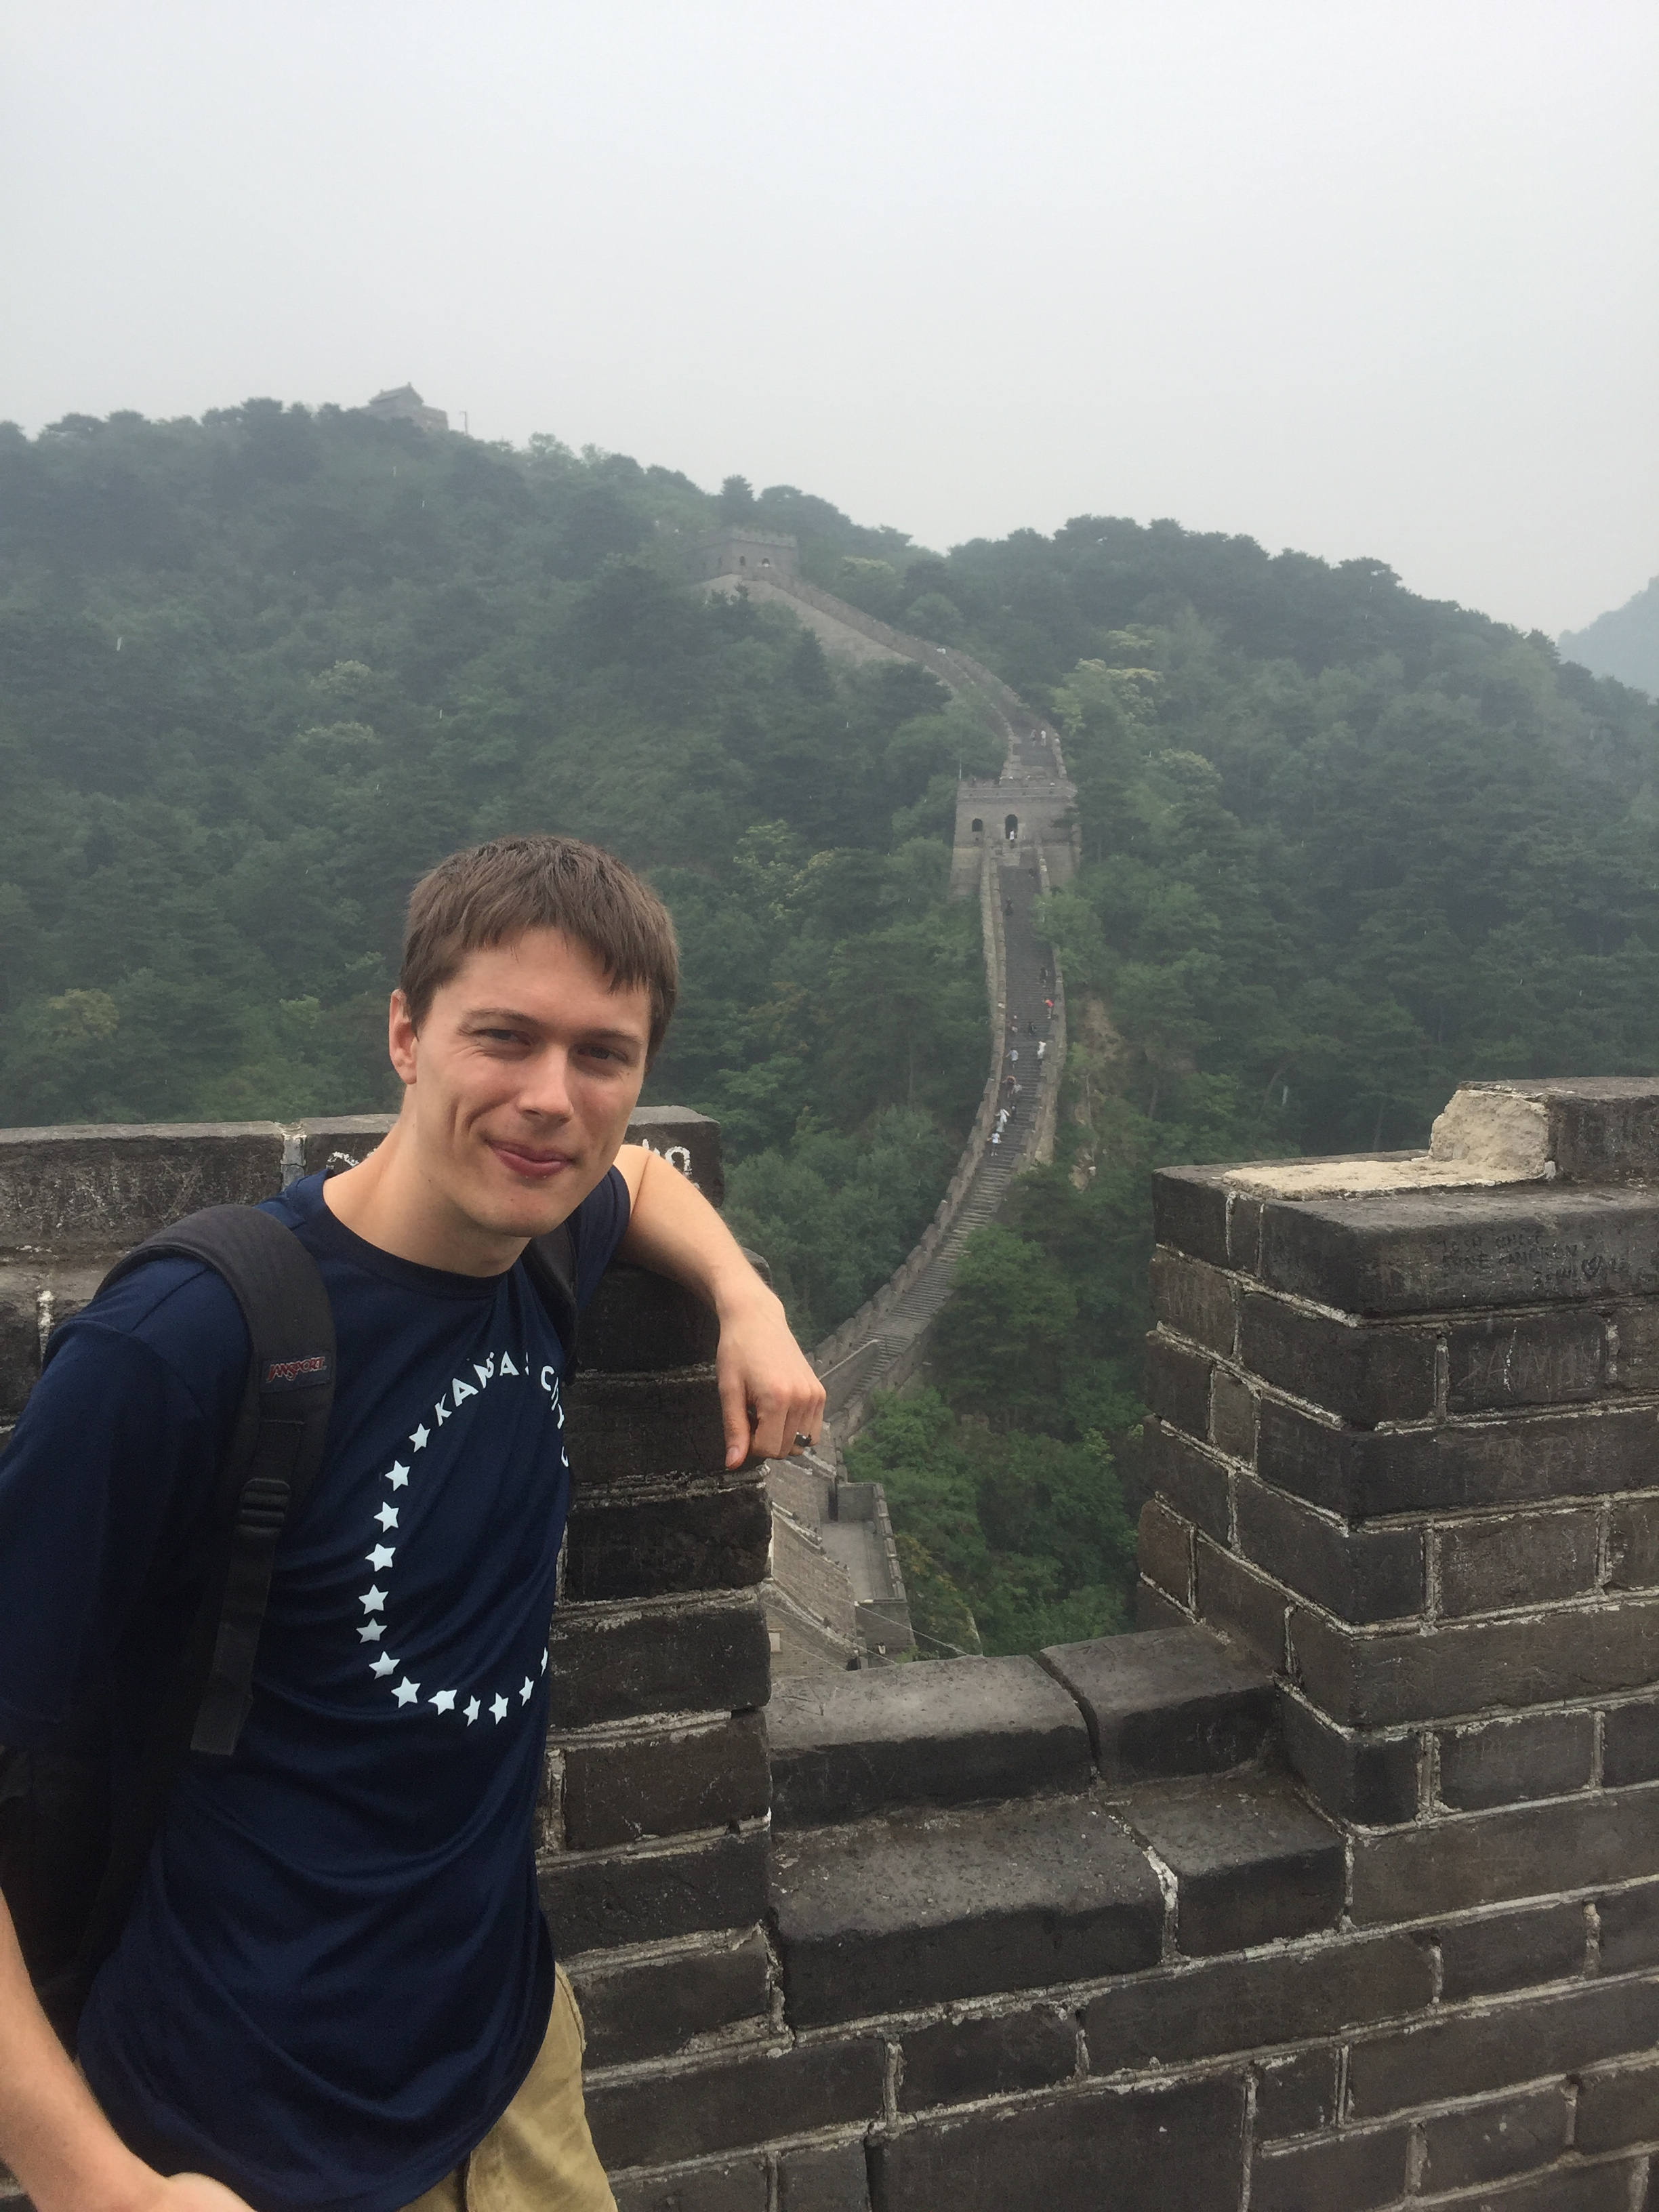 MY TOUR OF CHINA IN 22 TWEETS THAT NEVER HAPPENED